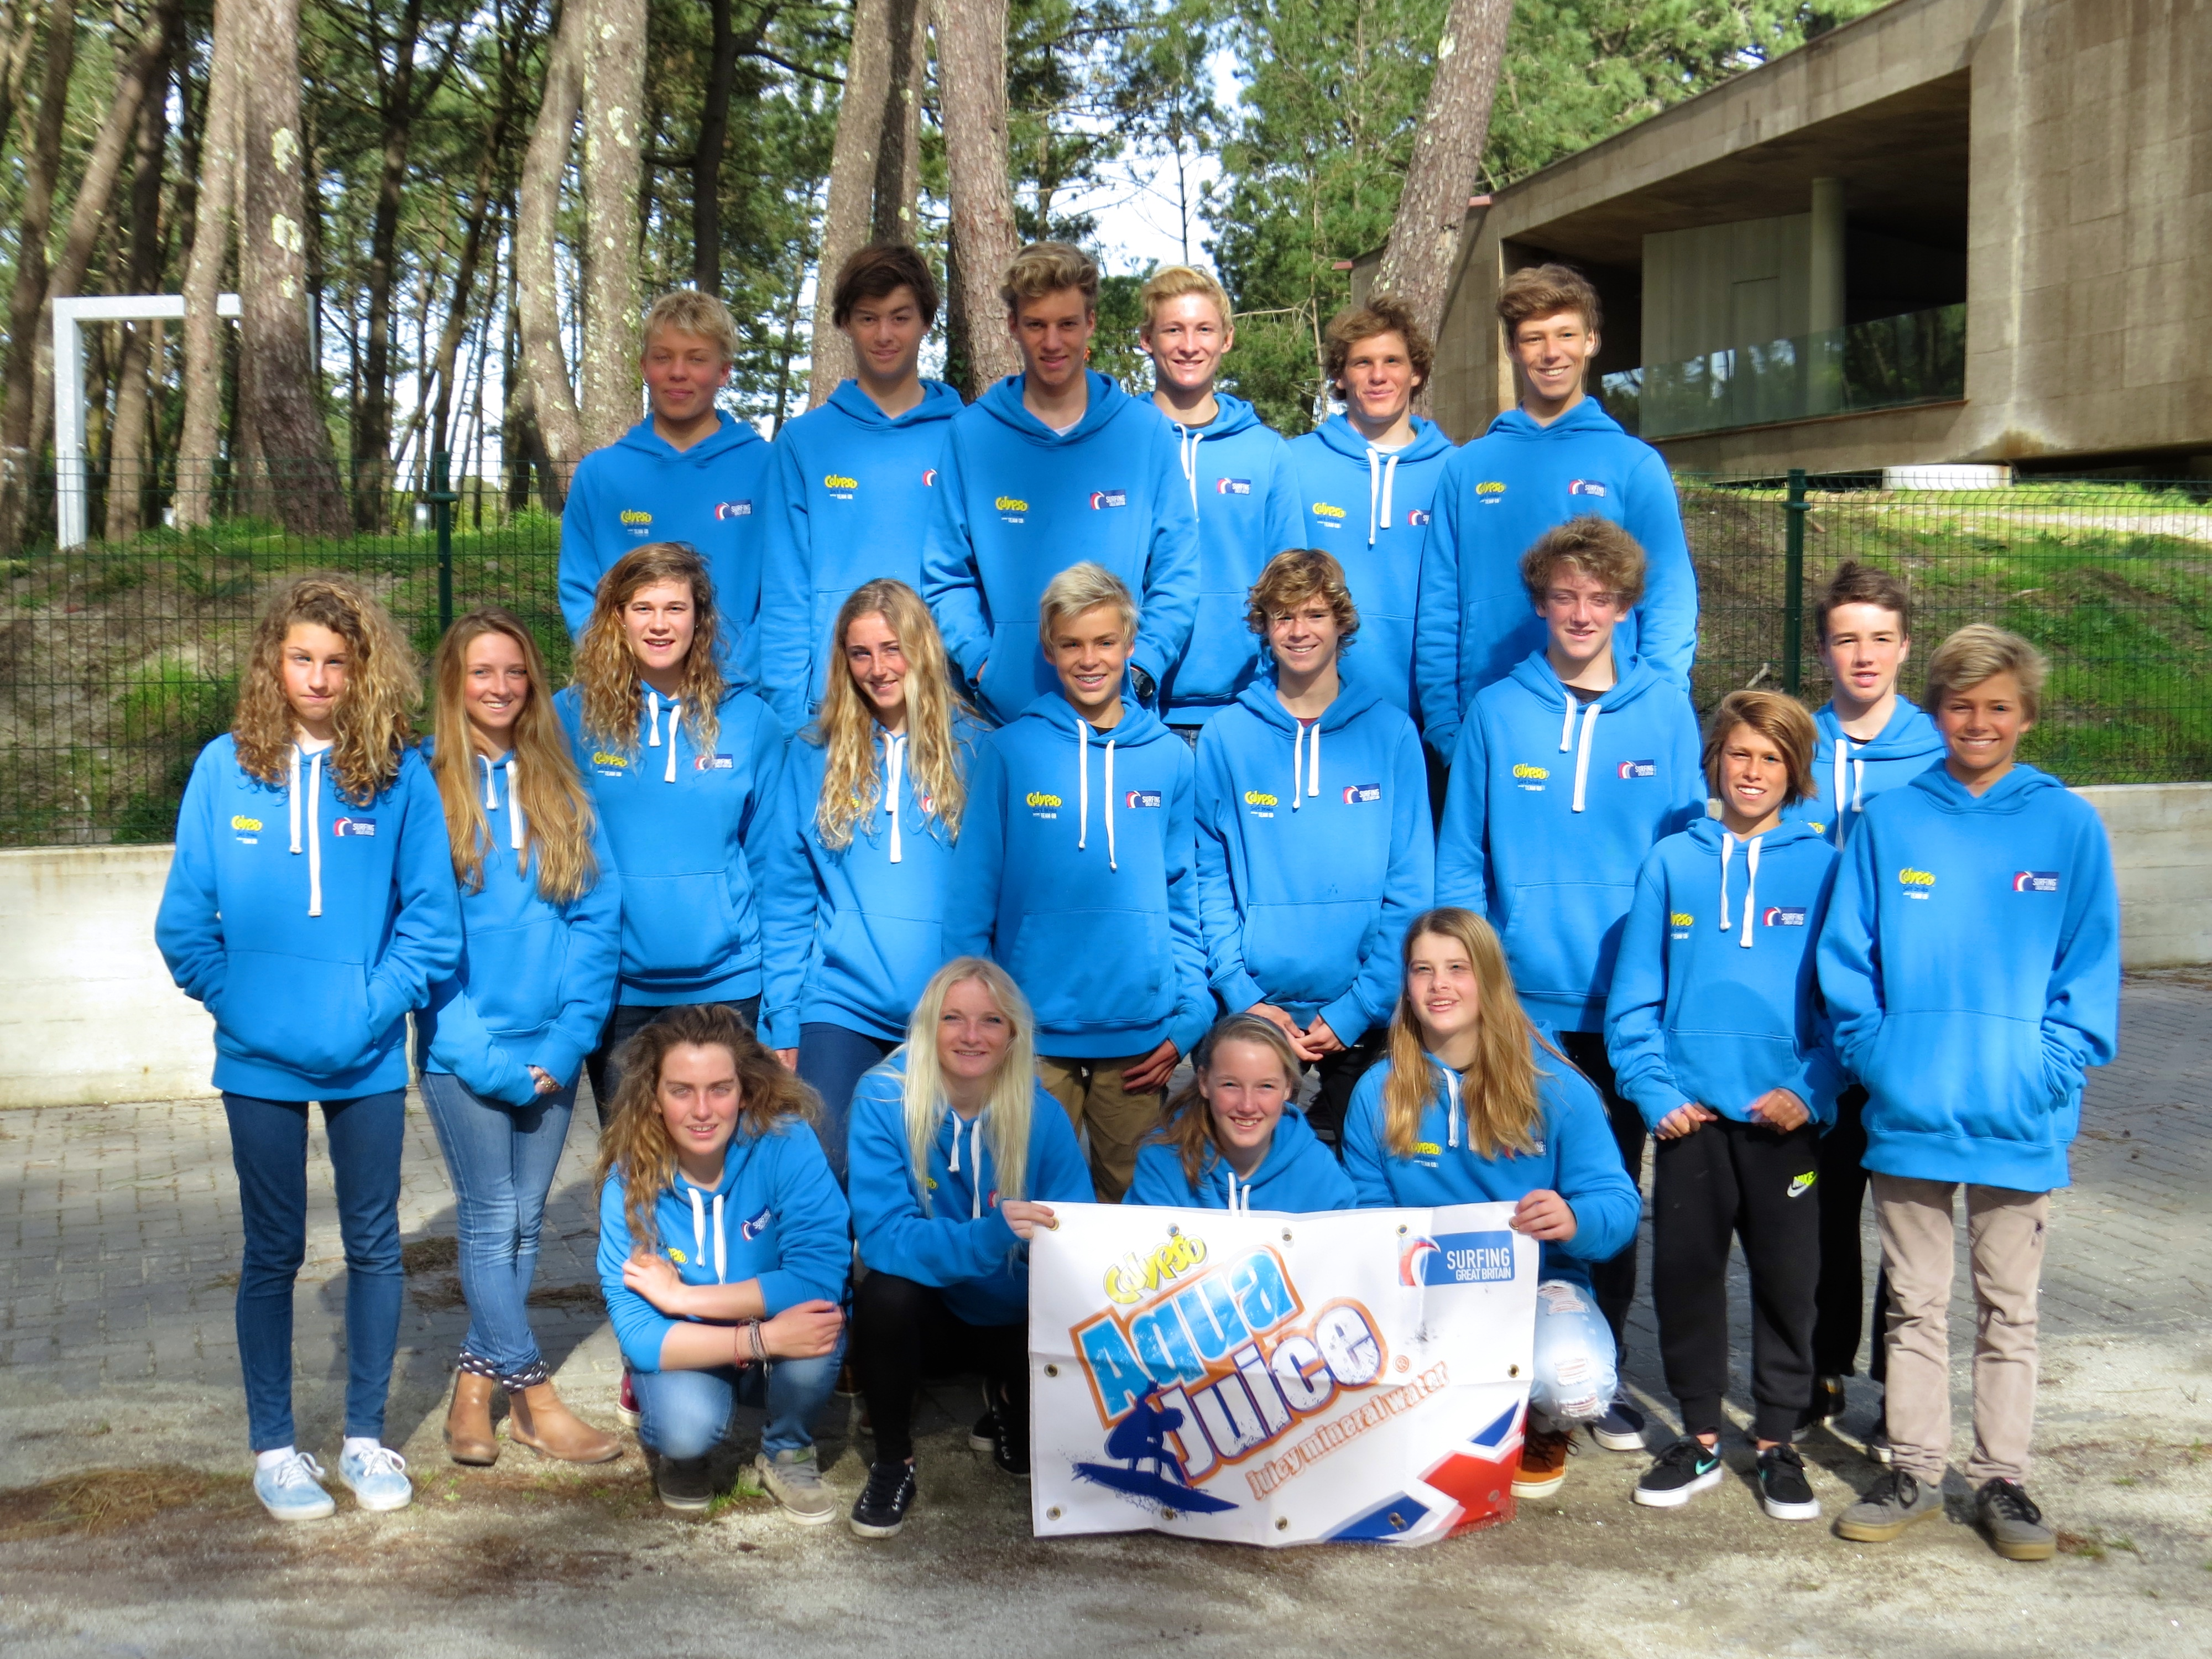 GB Junior Surf Team